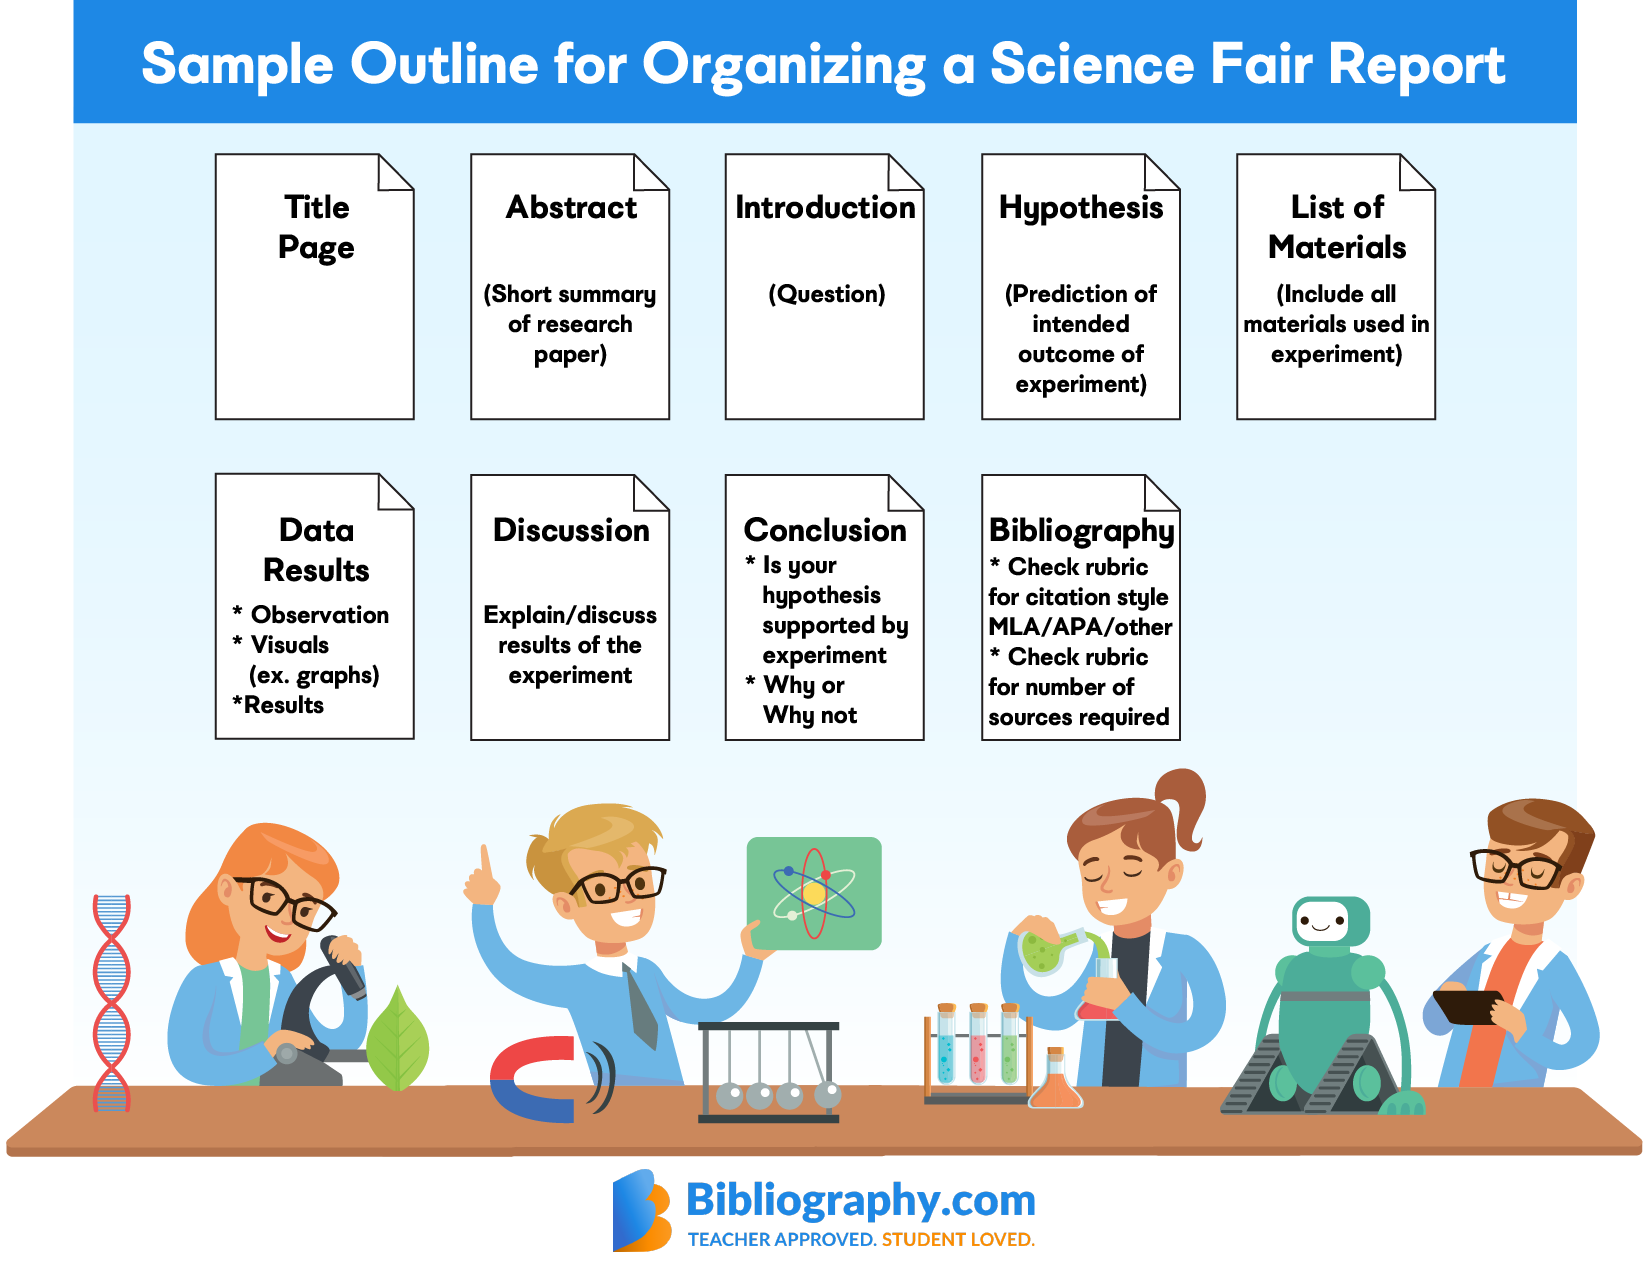 Sample outline for how to properly credit sources for a science fair project report